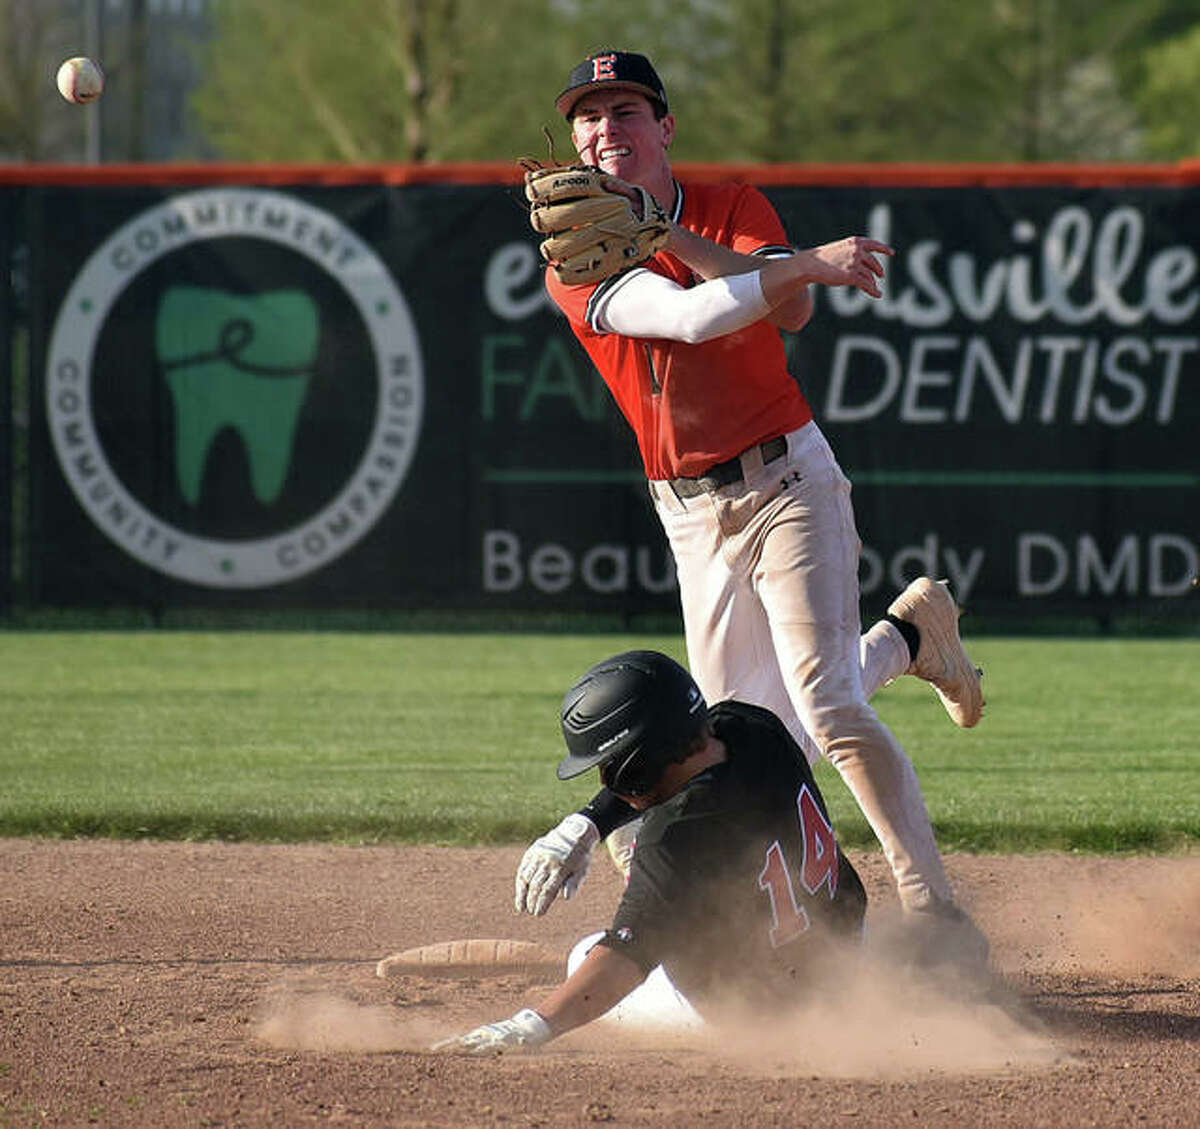 Edwardsville second baseman Evan Funkhouser fires a throw to first base to try and complete a double play against Highland in the fourth inning.